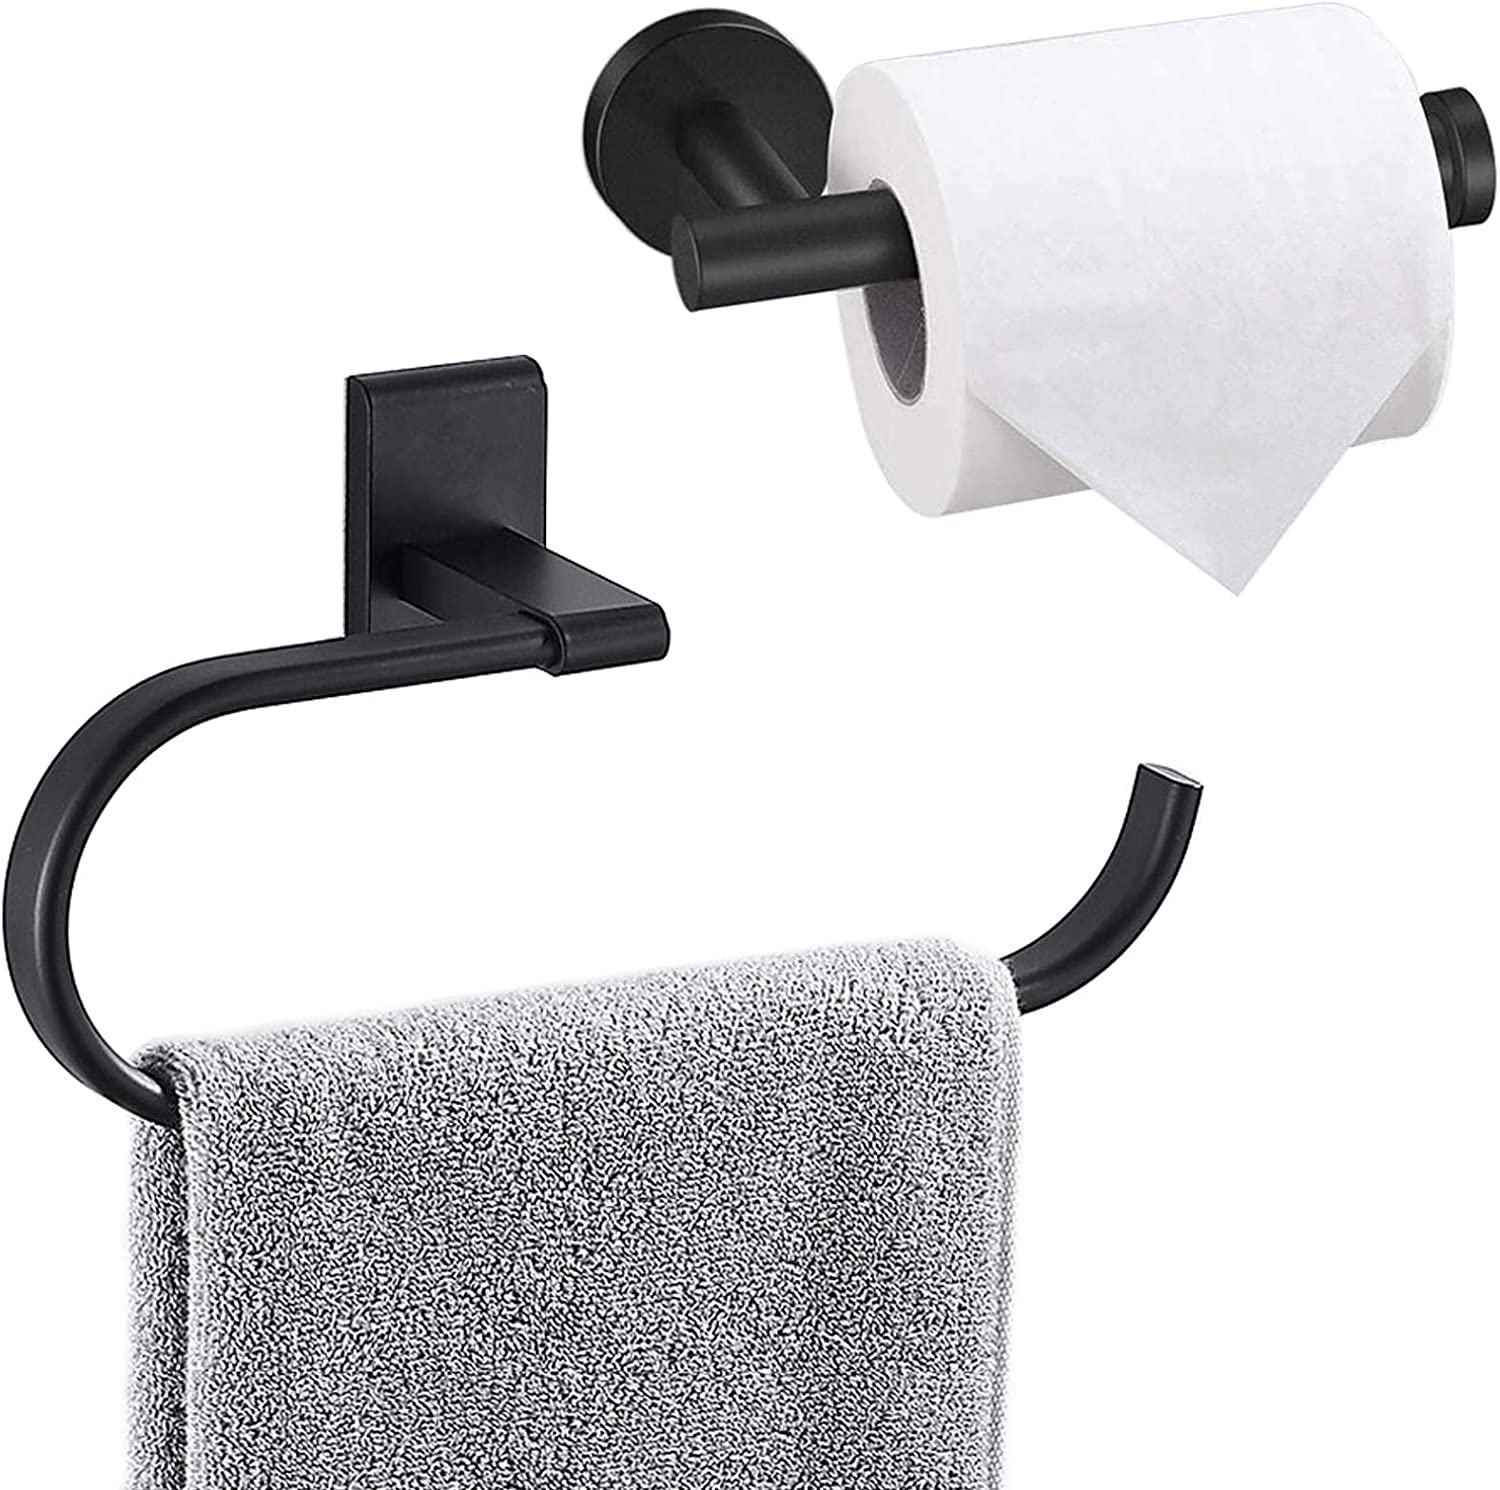 Amazon Com Bathroom Hardware Set 2 Piece Matte Black Towel Ring And Toilet Paper Holder Space Aluminum Bathroom Accessories Set For Bathroom Wall Mounted Bath Hardware Home Kitchen